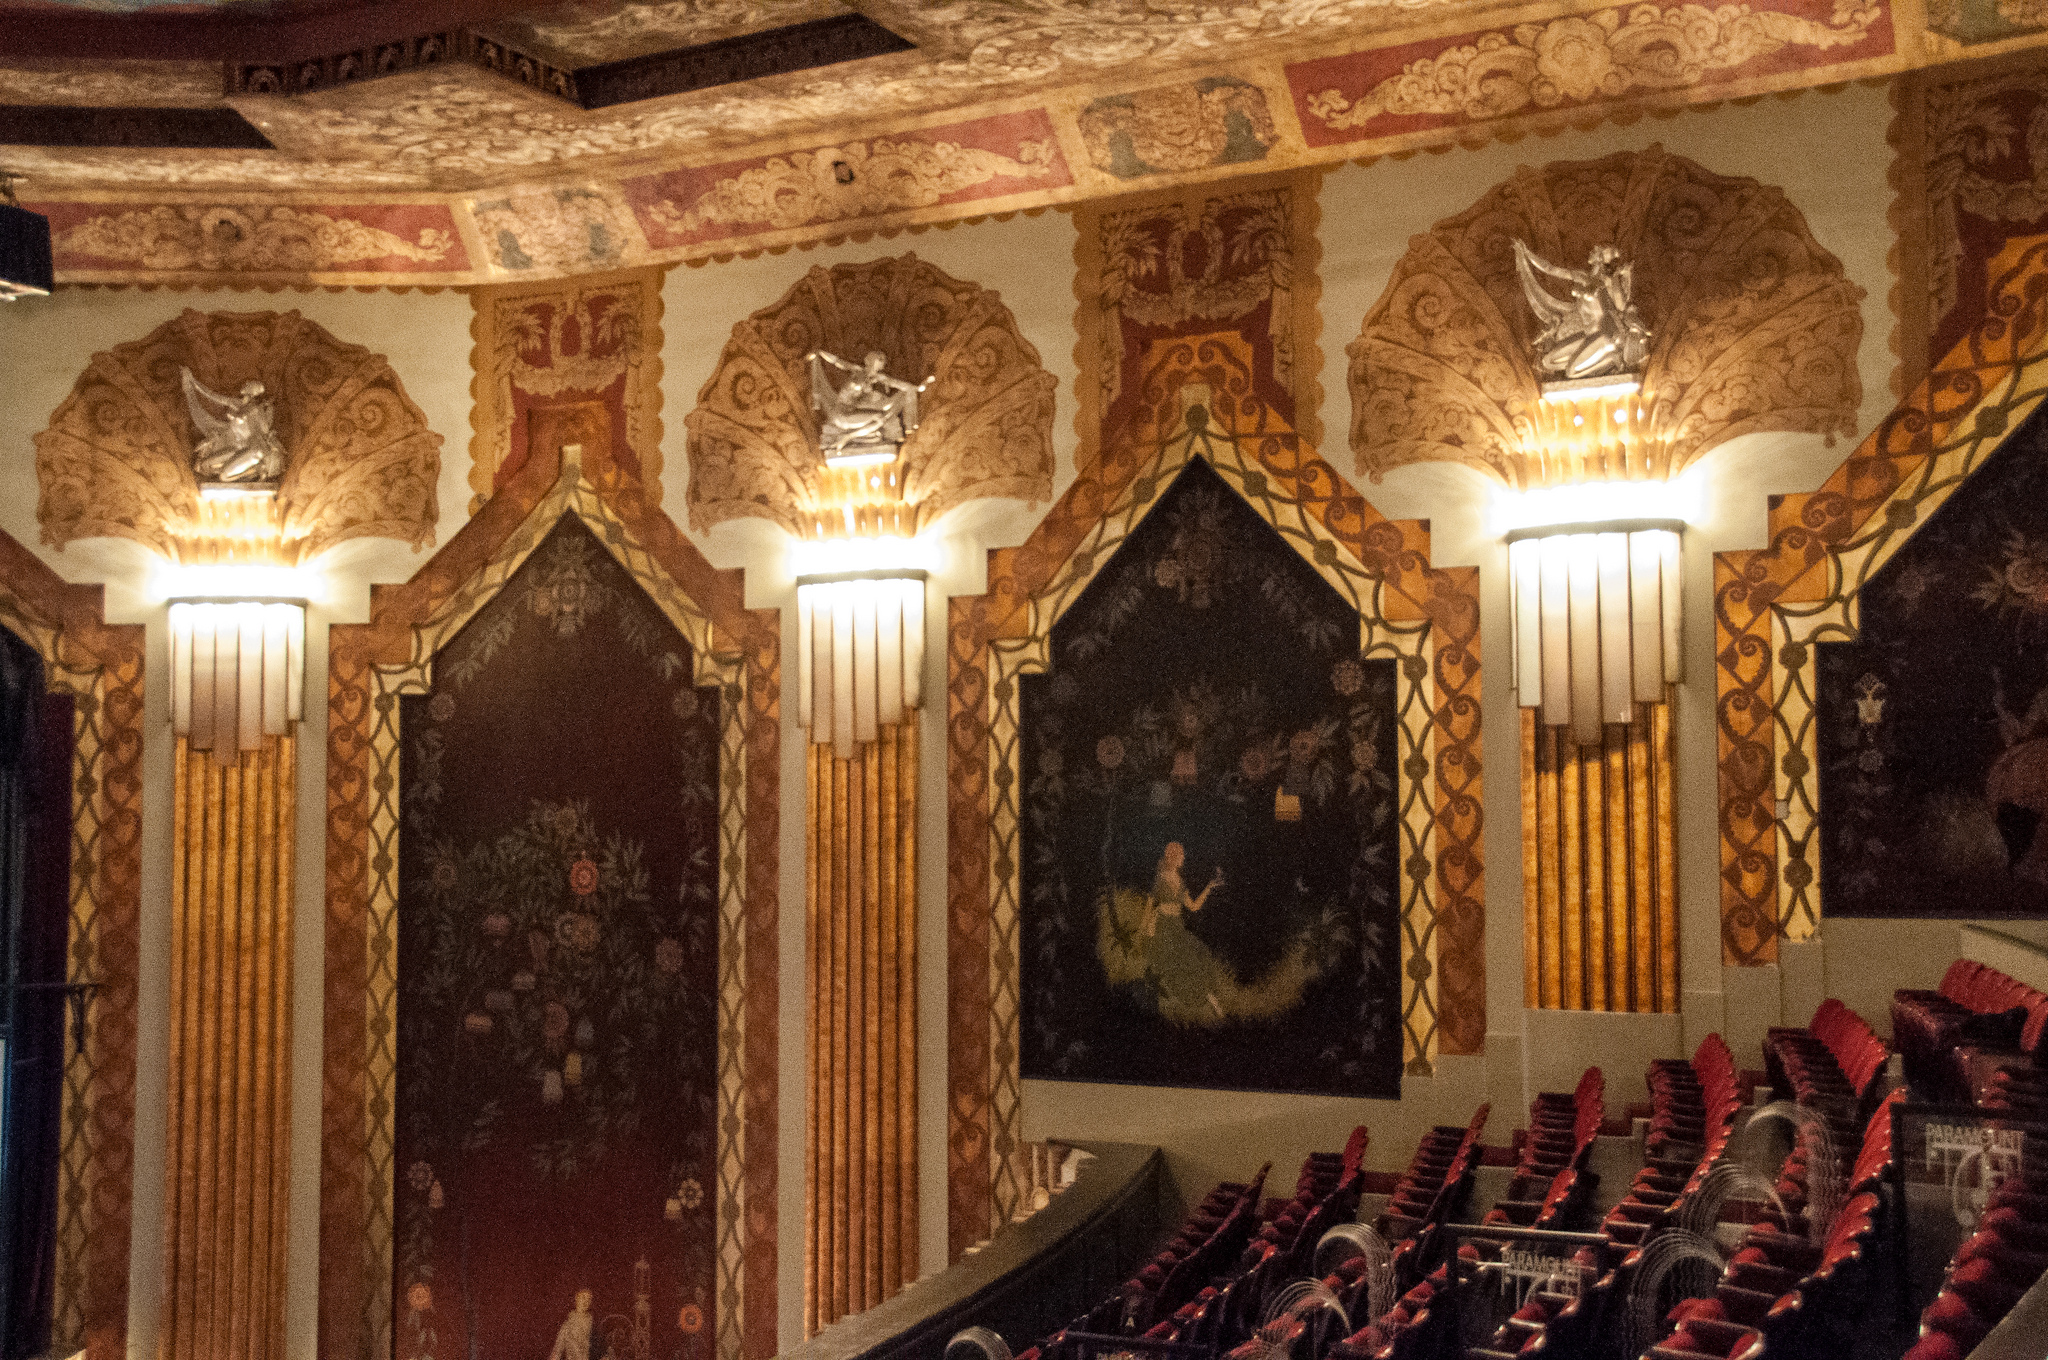 The Paramount theater's Art Deco detailing and murals painted on silk seen from the balcony. Photo by Ken Kanouse. Licensed under Creative Commons.